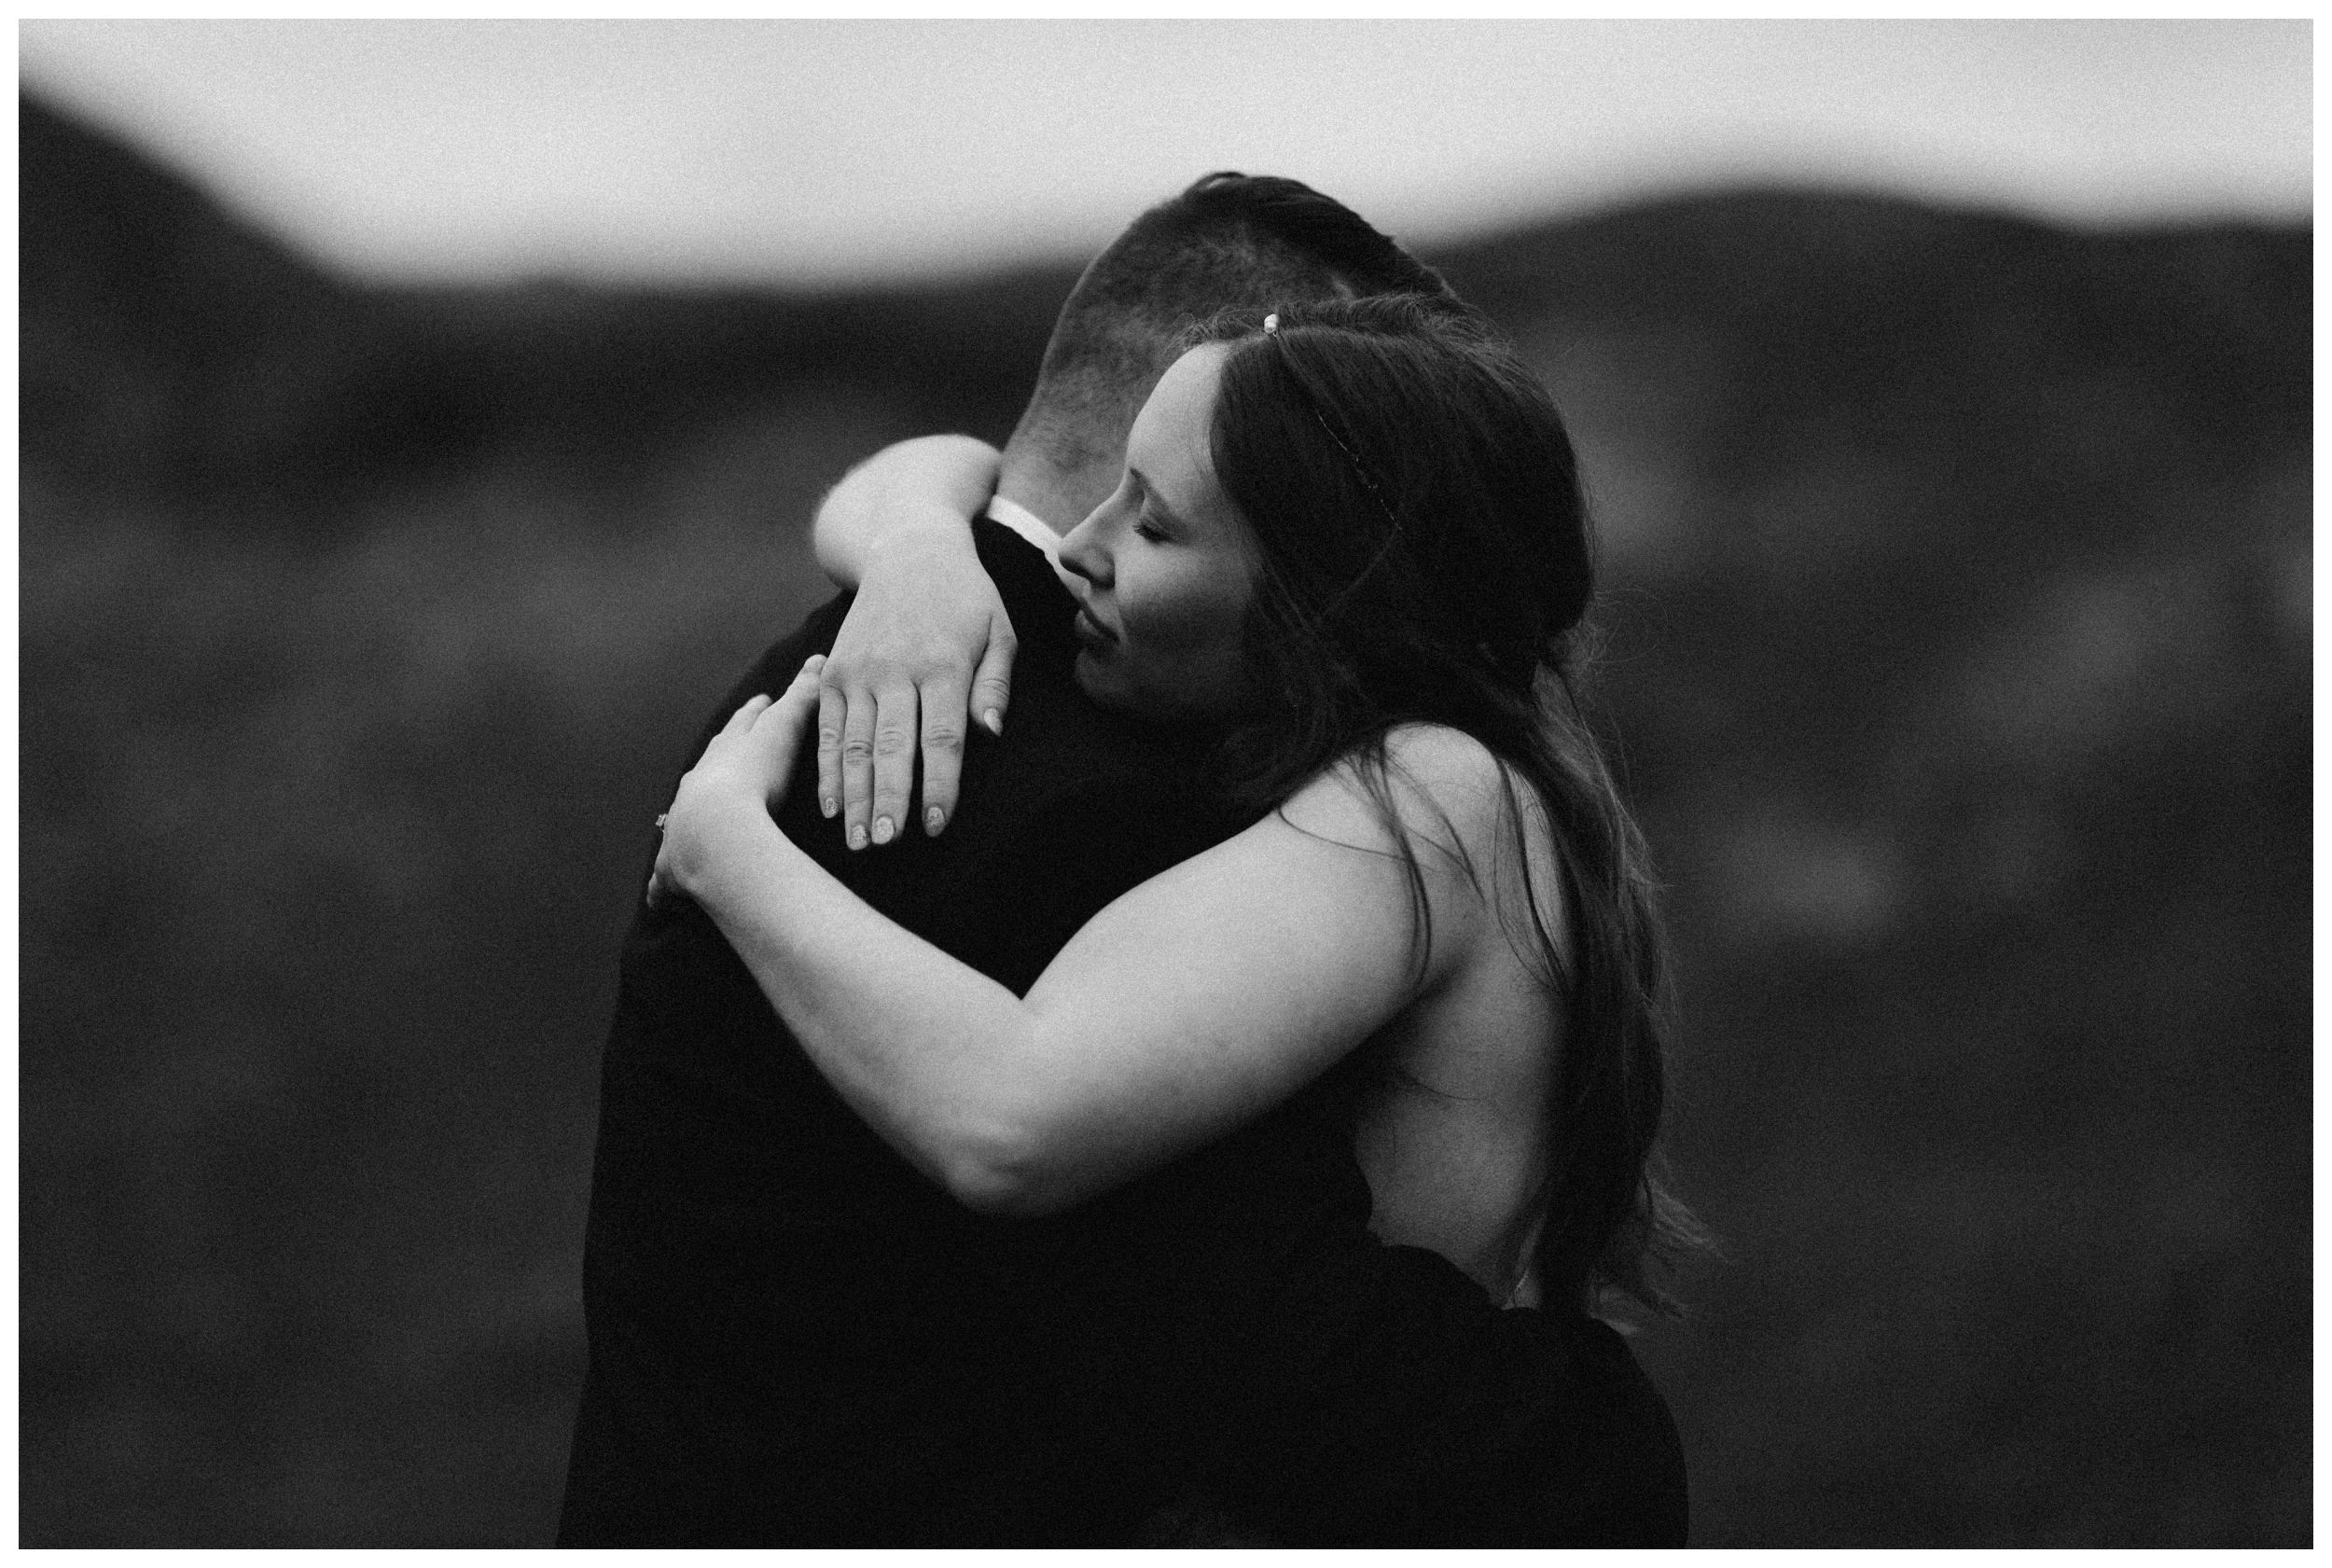 Elissa and Daniel share an embrace in the Scottish Highlands following their private destination adventure elopement ceremony outside Glencoe, Scotland. Photo by Maddie Mae, Adventure Instead.